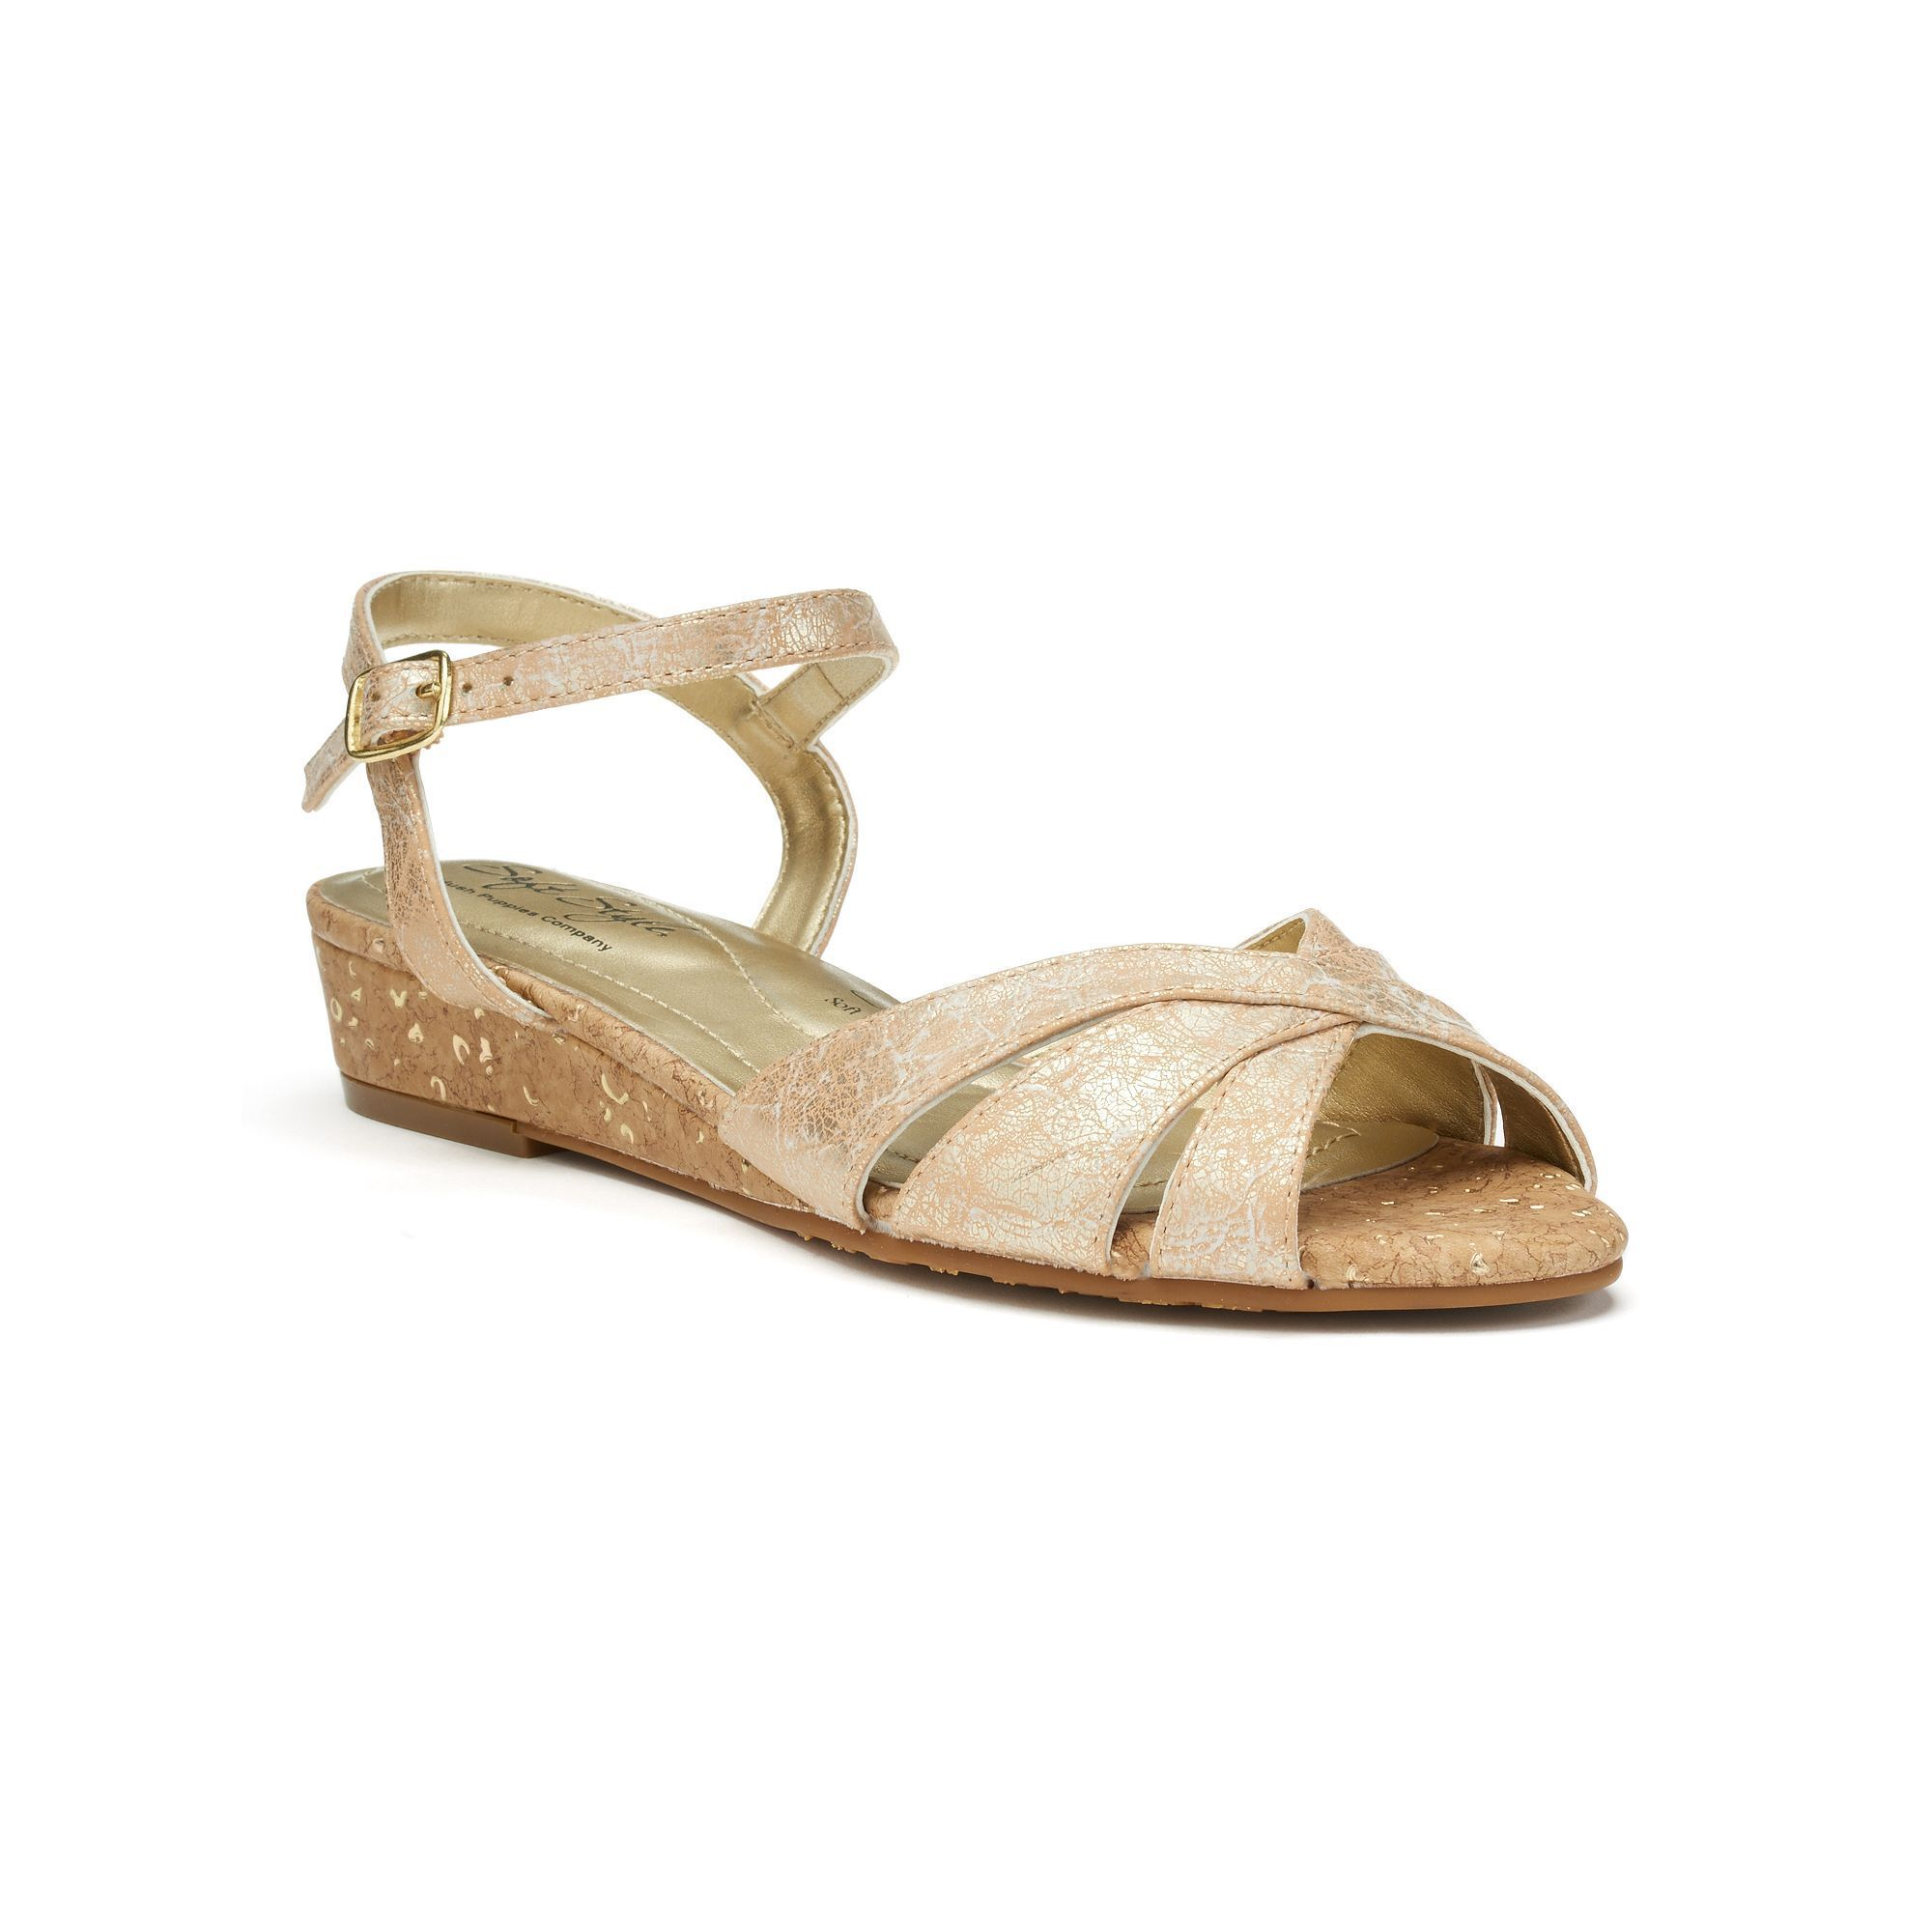 100% guaranteed for sale Soft Style by Hush Puppies ... Midnite Women's Wedge Sandals free shipping sast recommend sale online free shipping reliable 7JA2j